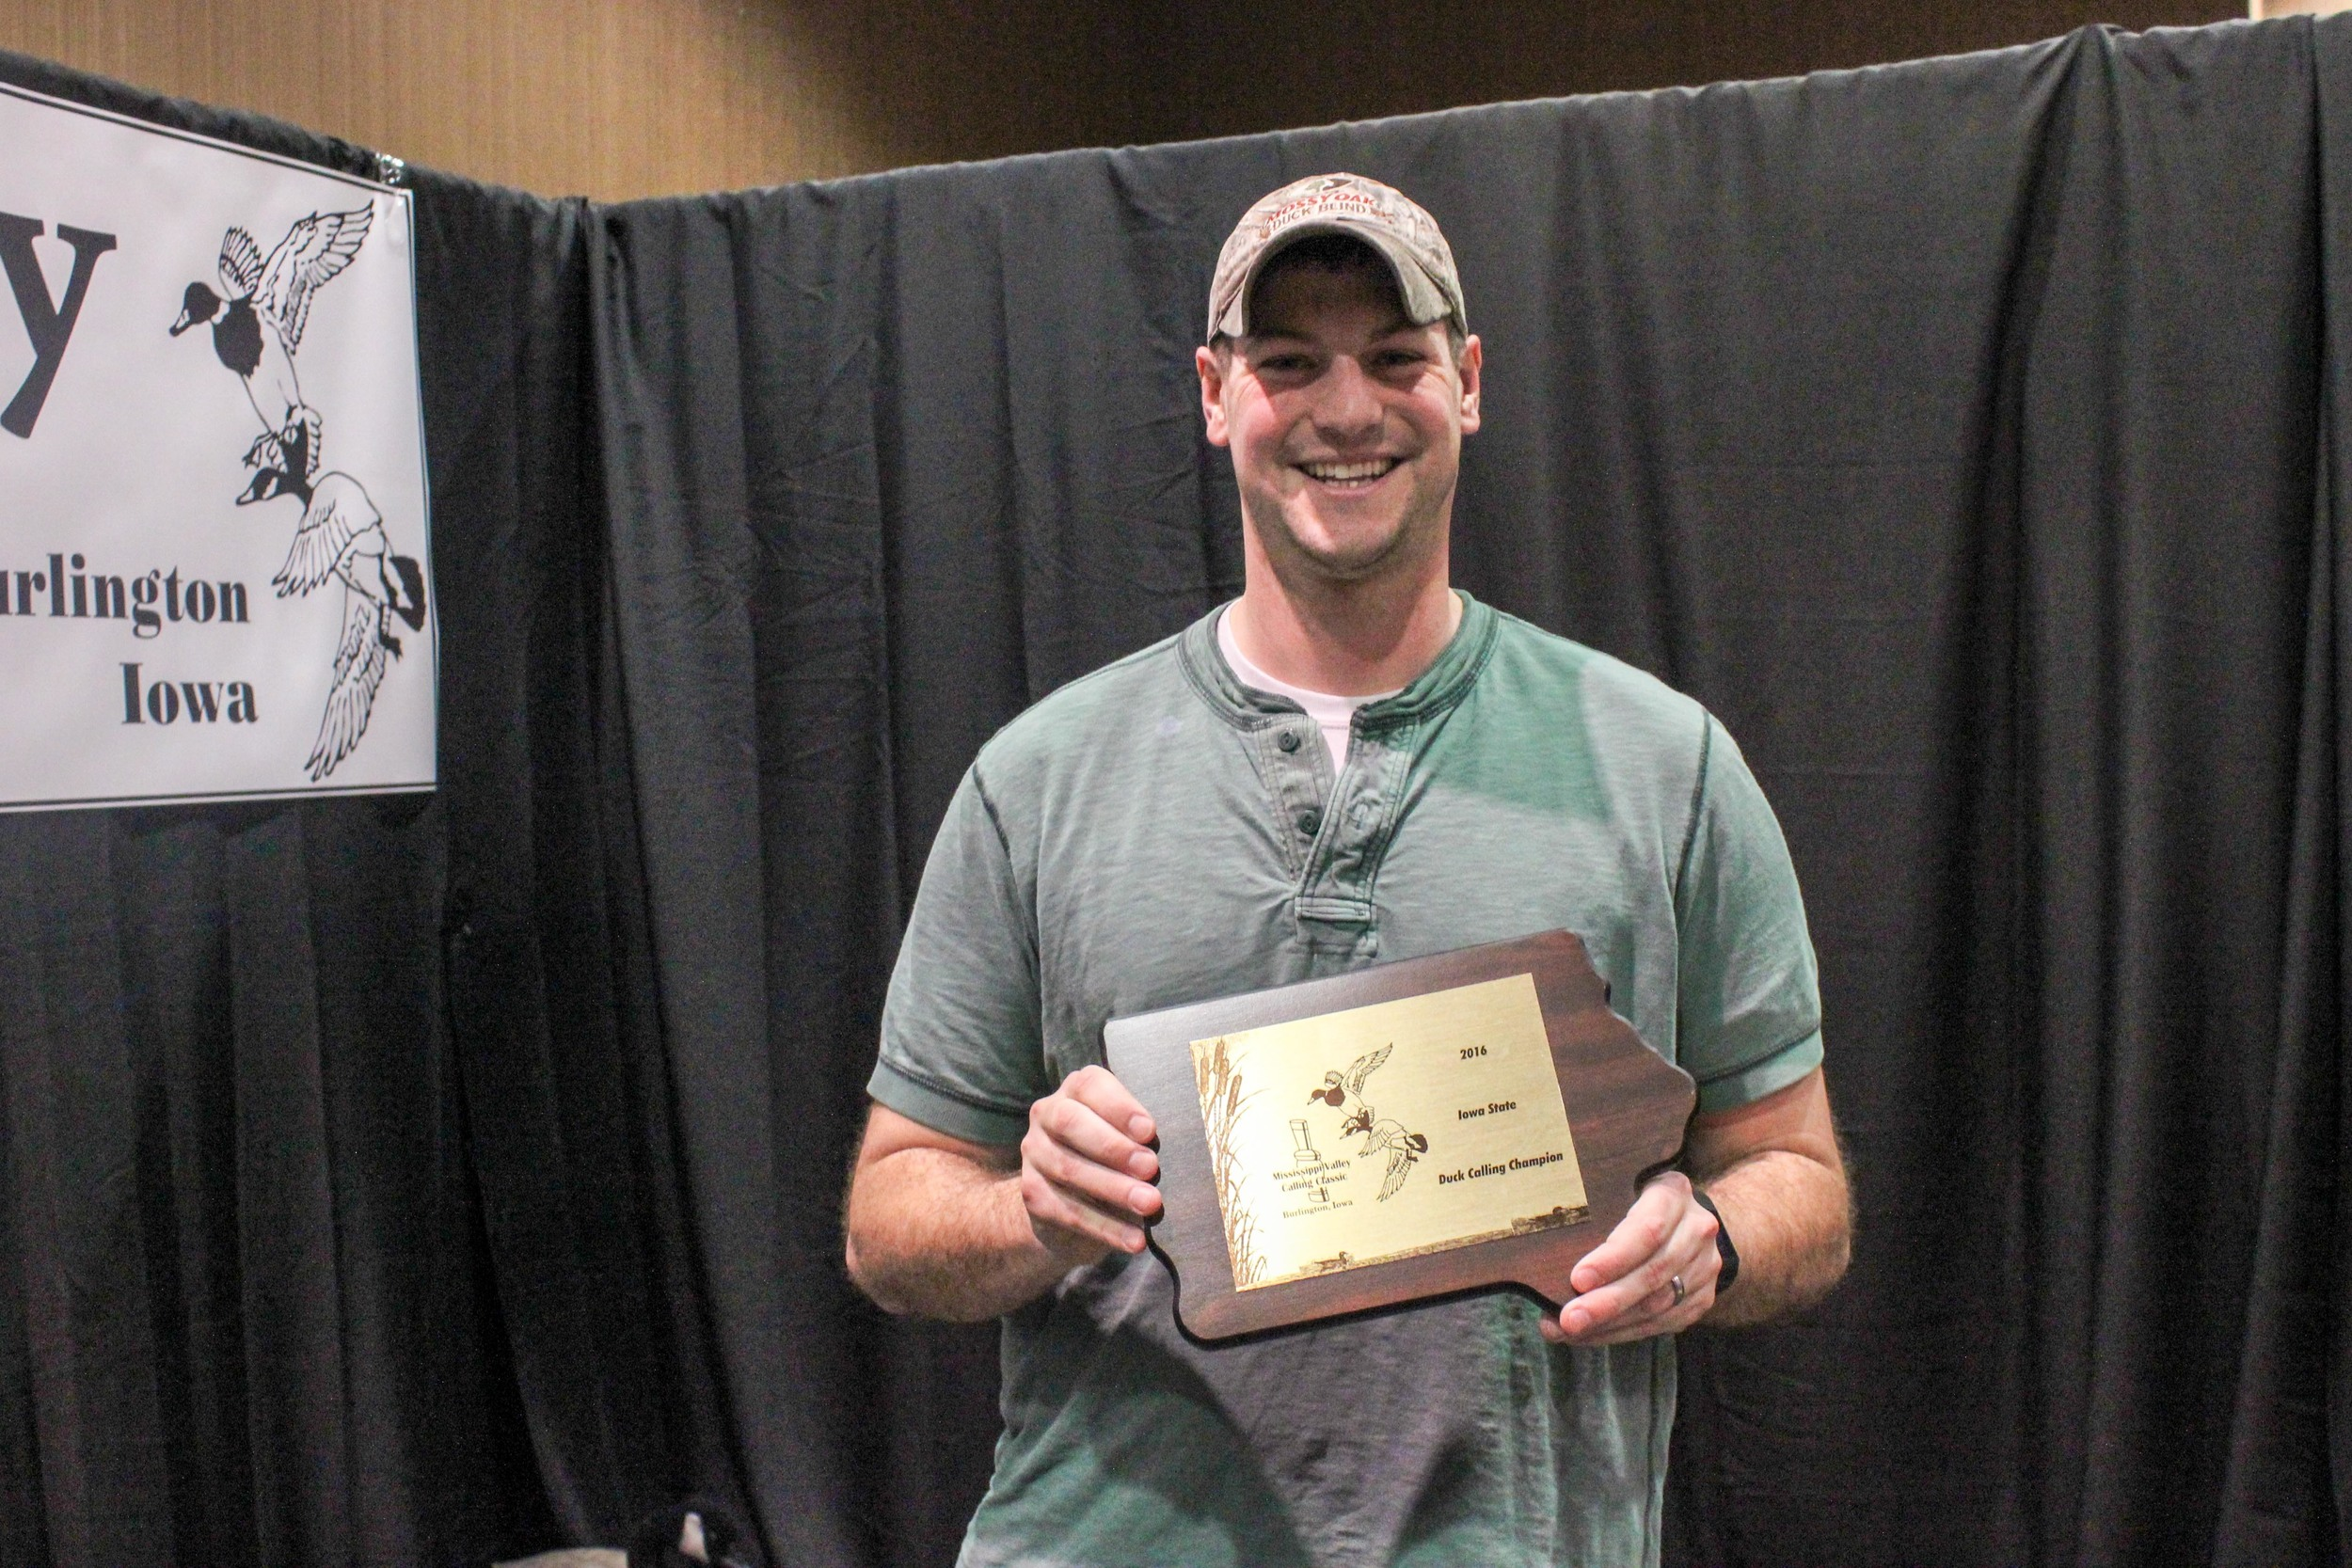 Mitch Larson: 2016 Iowa State Duck Calling Champion